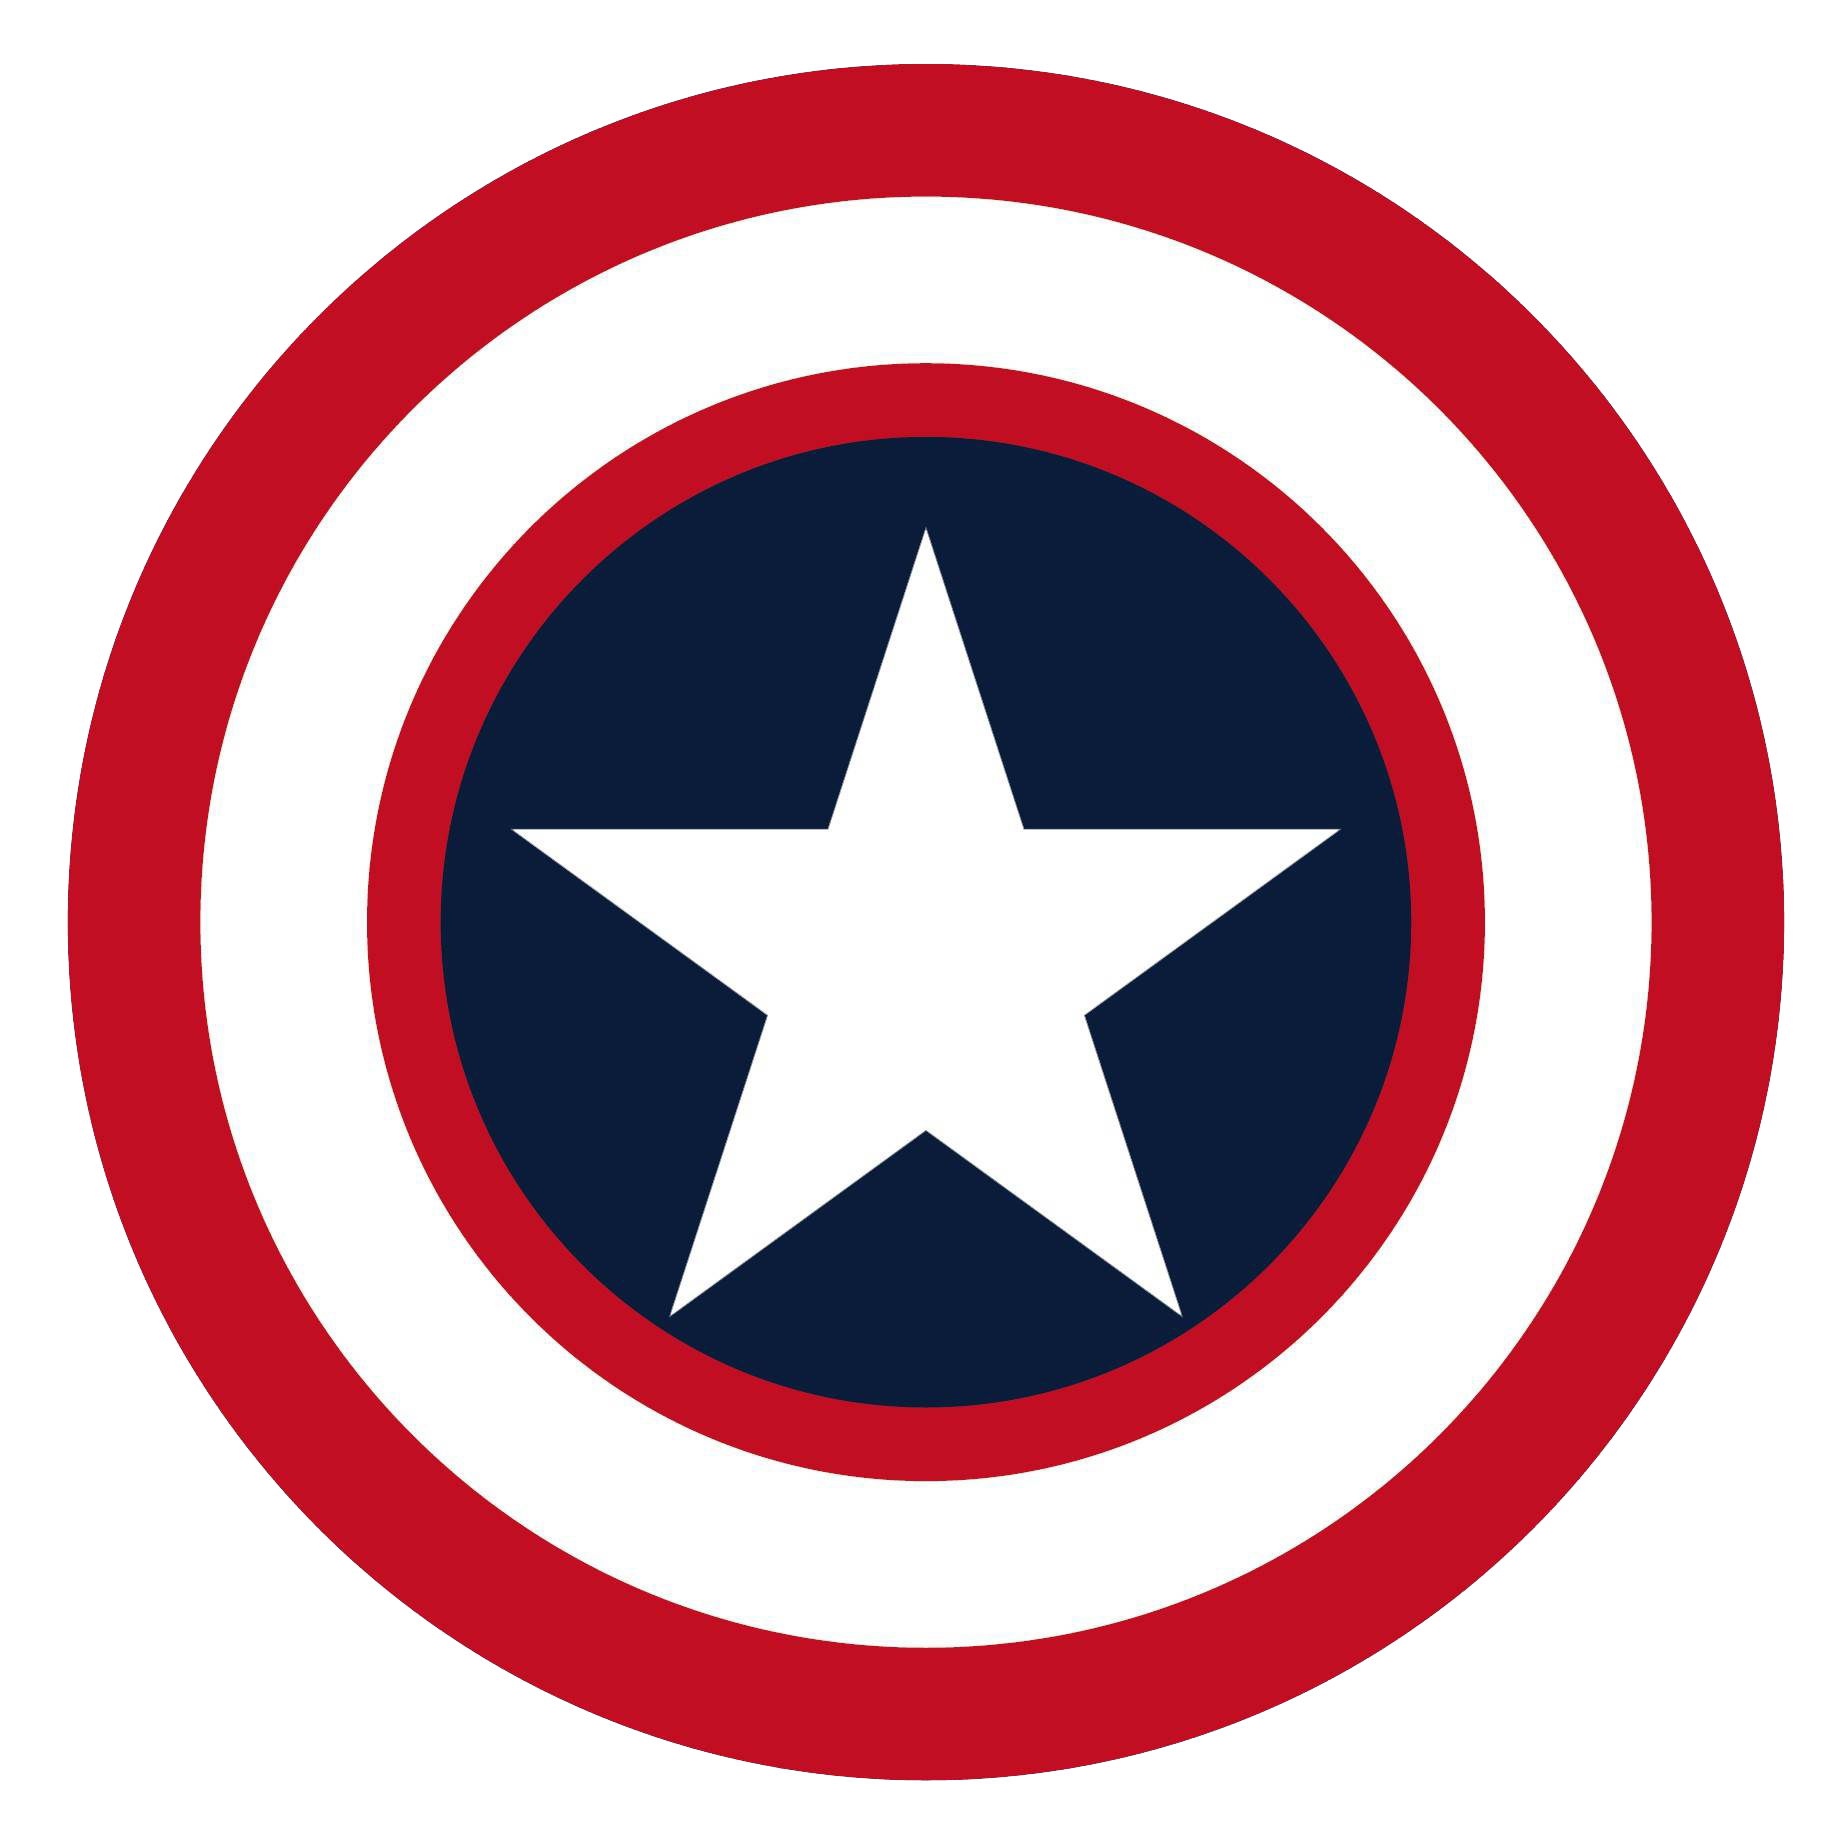 Capit n am rica. Captain marvel symbol png clip royalty free library